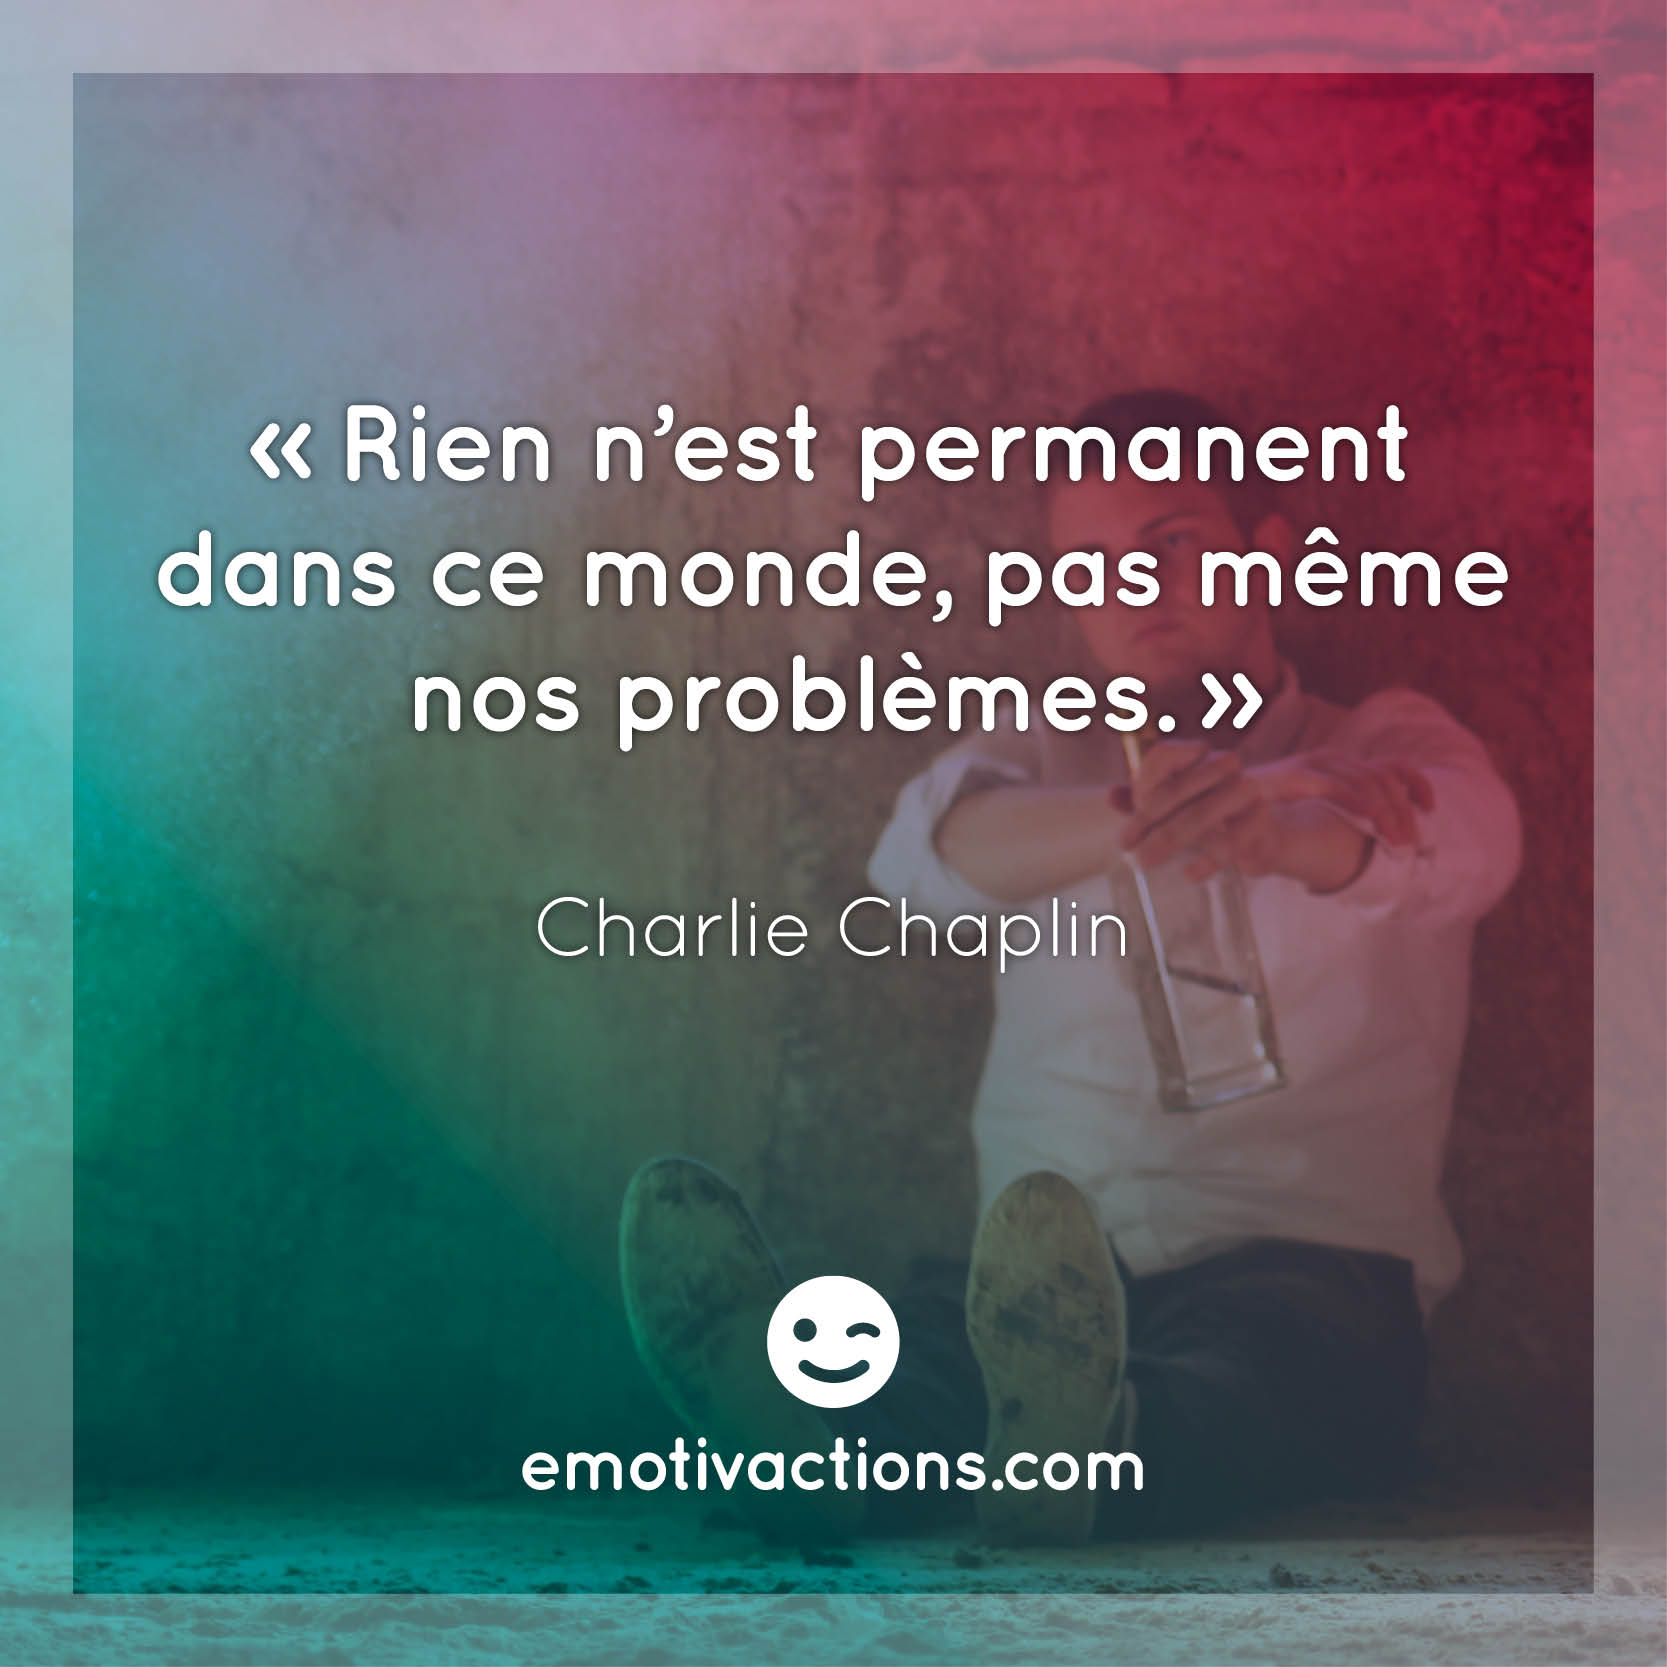 L'optimisme - Rien n'est permanent citation Chaplin